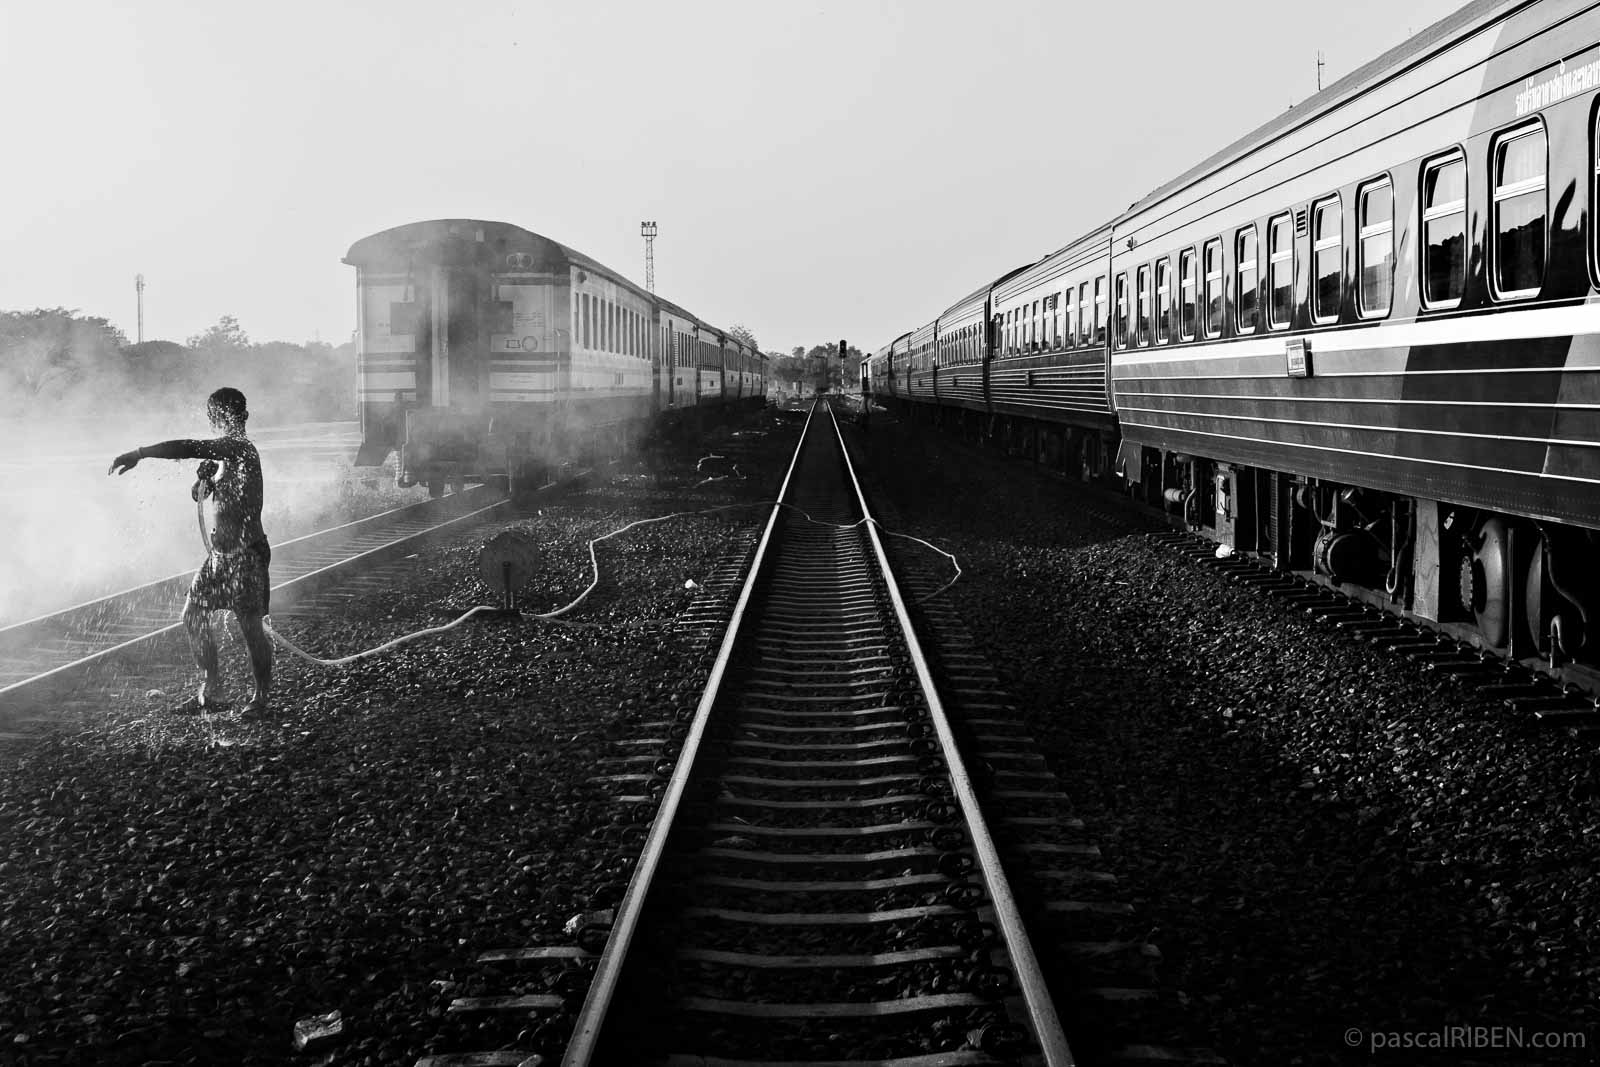 A man is taking a shower on the tracks at Nong Khai railway station in Thailand.